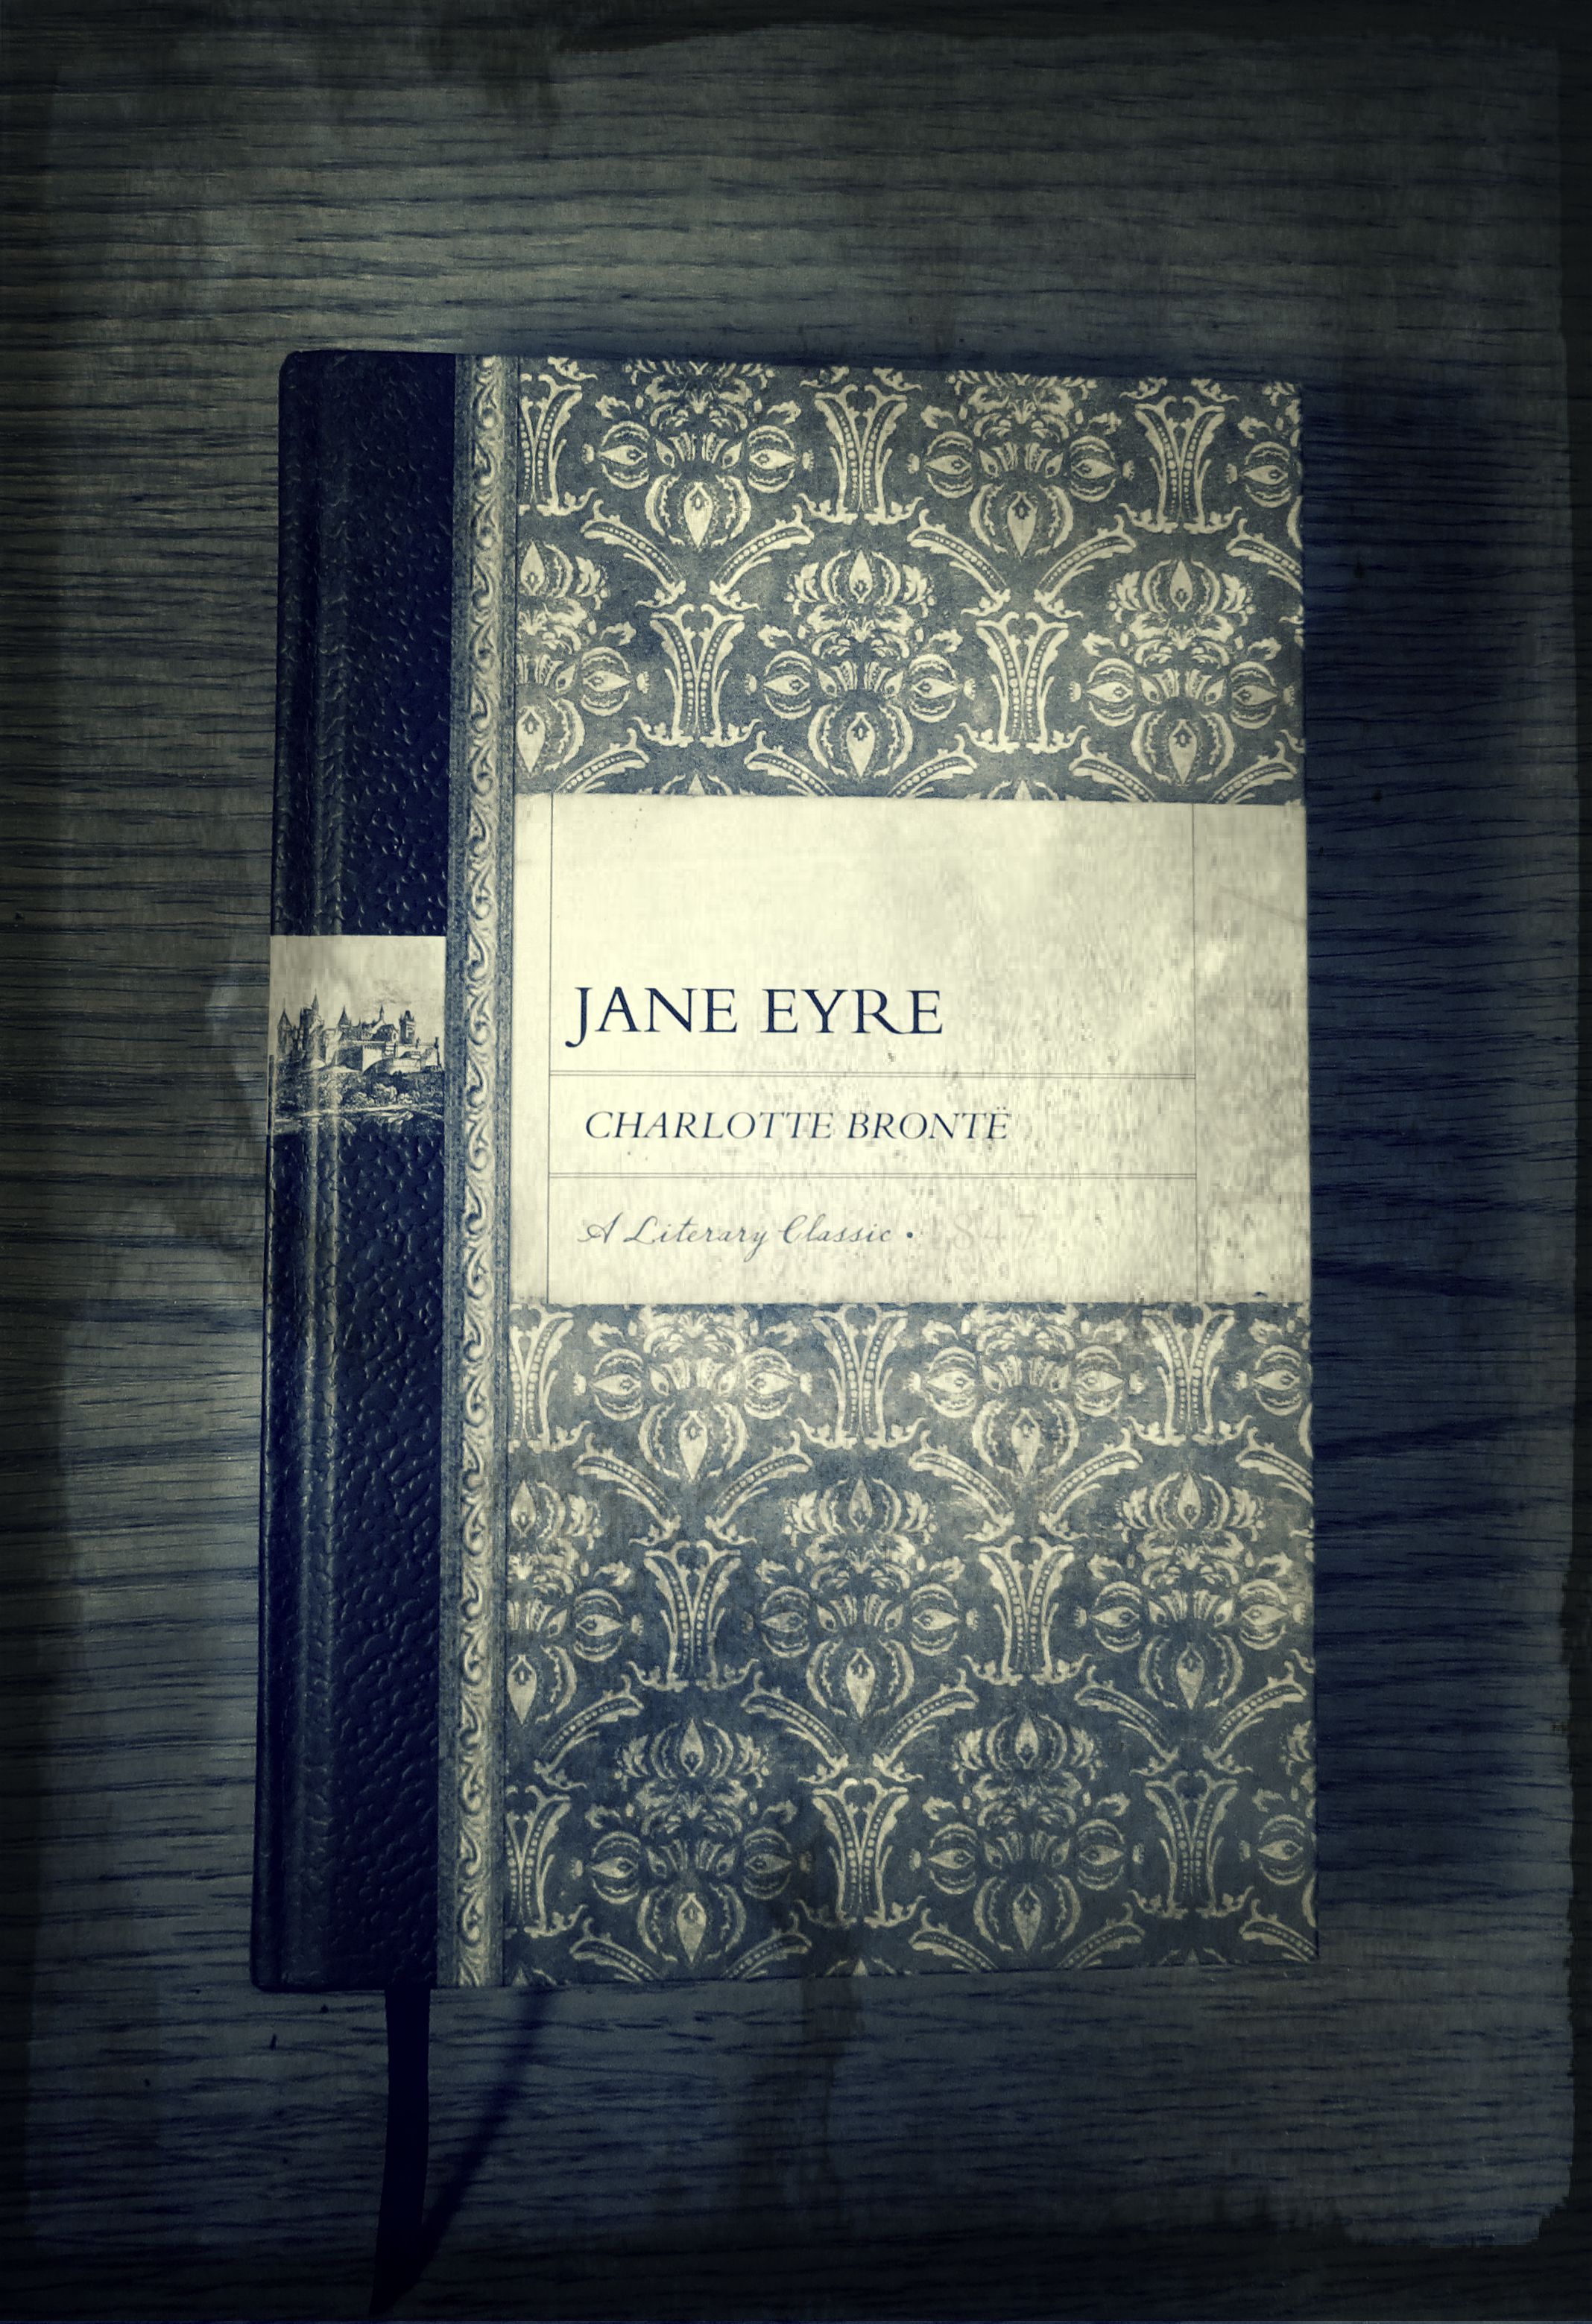 paranormal experience jane eyre Narrative techniques: realism and the supernatural a realist novel in general terms, jane eyre may be described as a realist novel it describes a believable story.